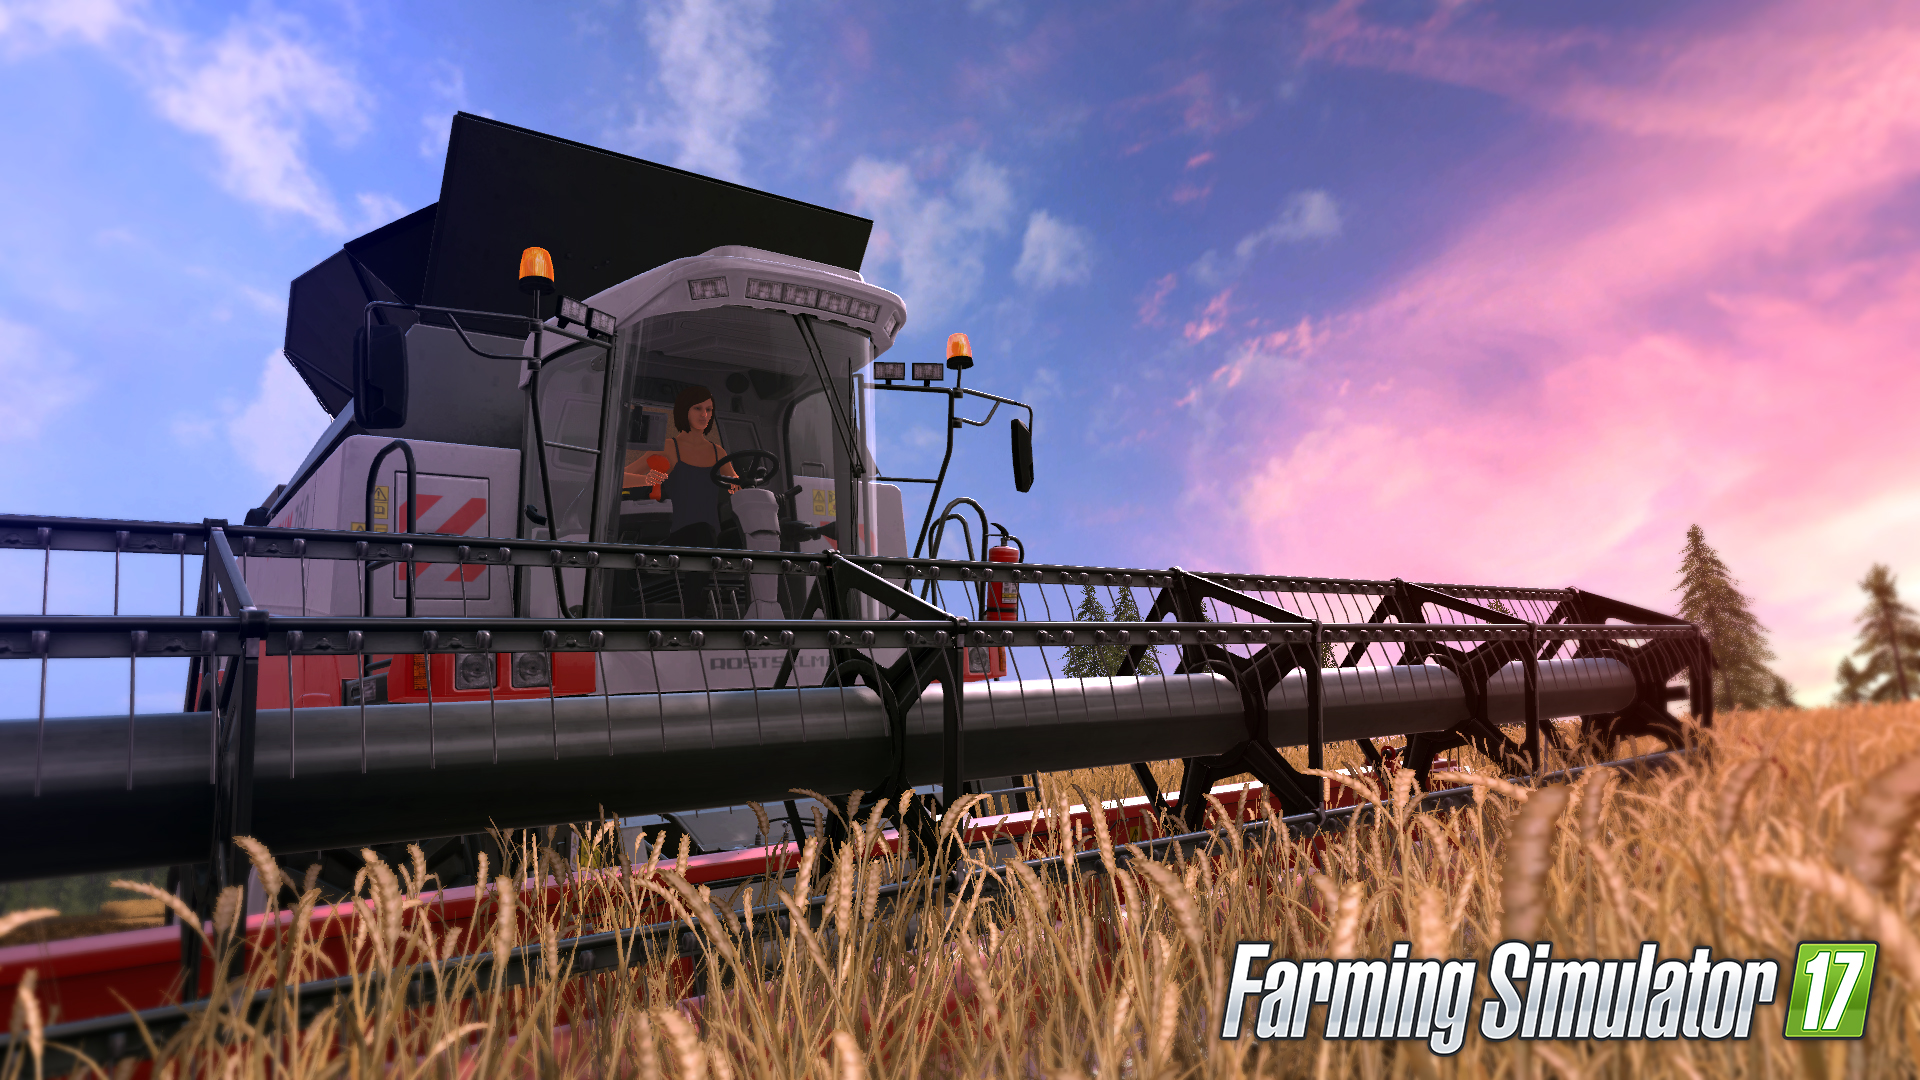 Farming Simulator 17 will have Mods on PS4 and Xbox One